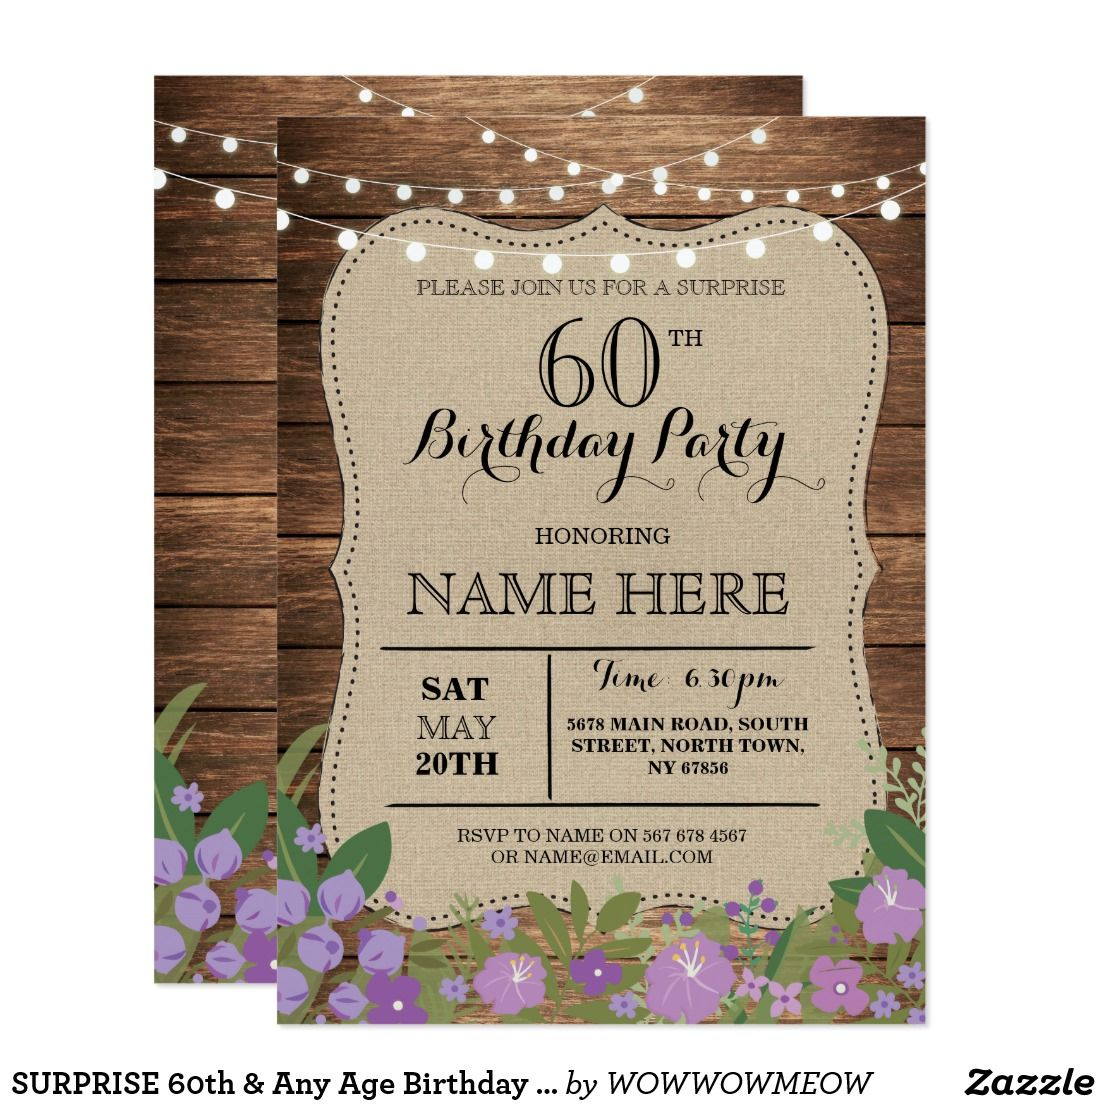 SURPRISE 60th & Any Age Birthday Party Wood Invite | Birthdays